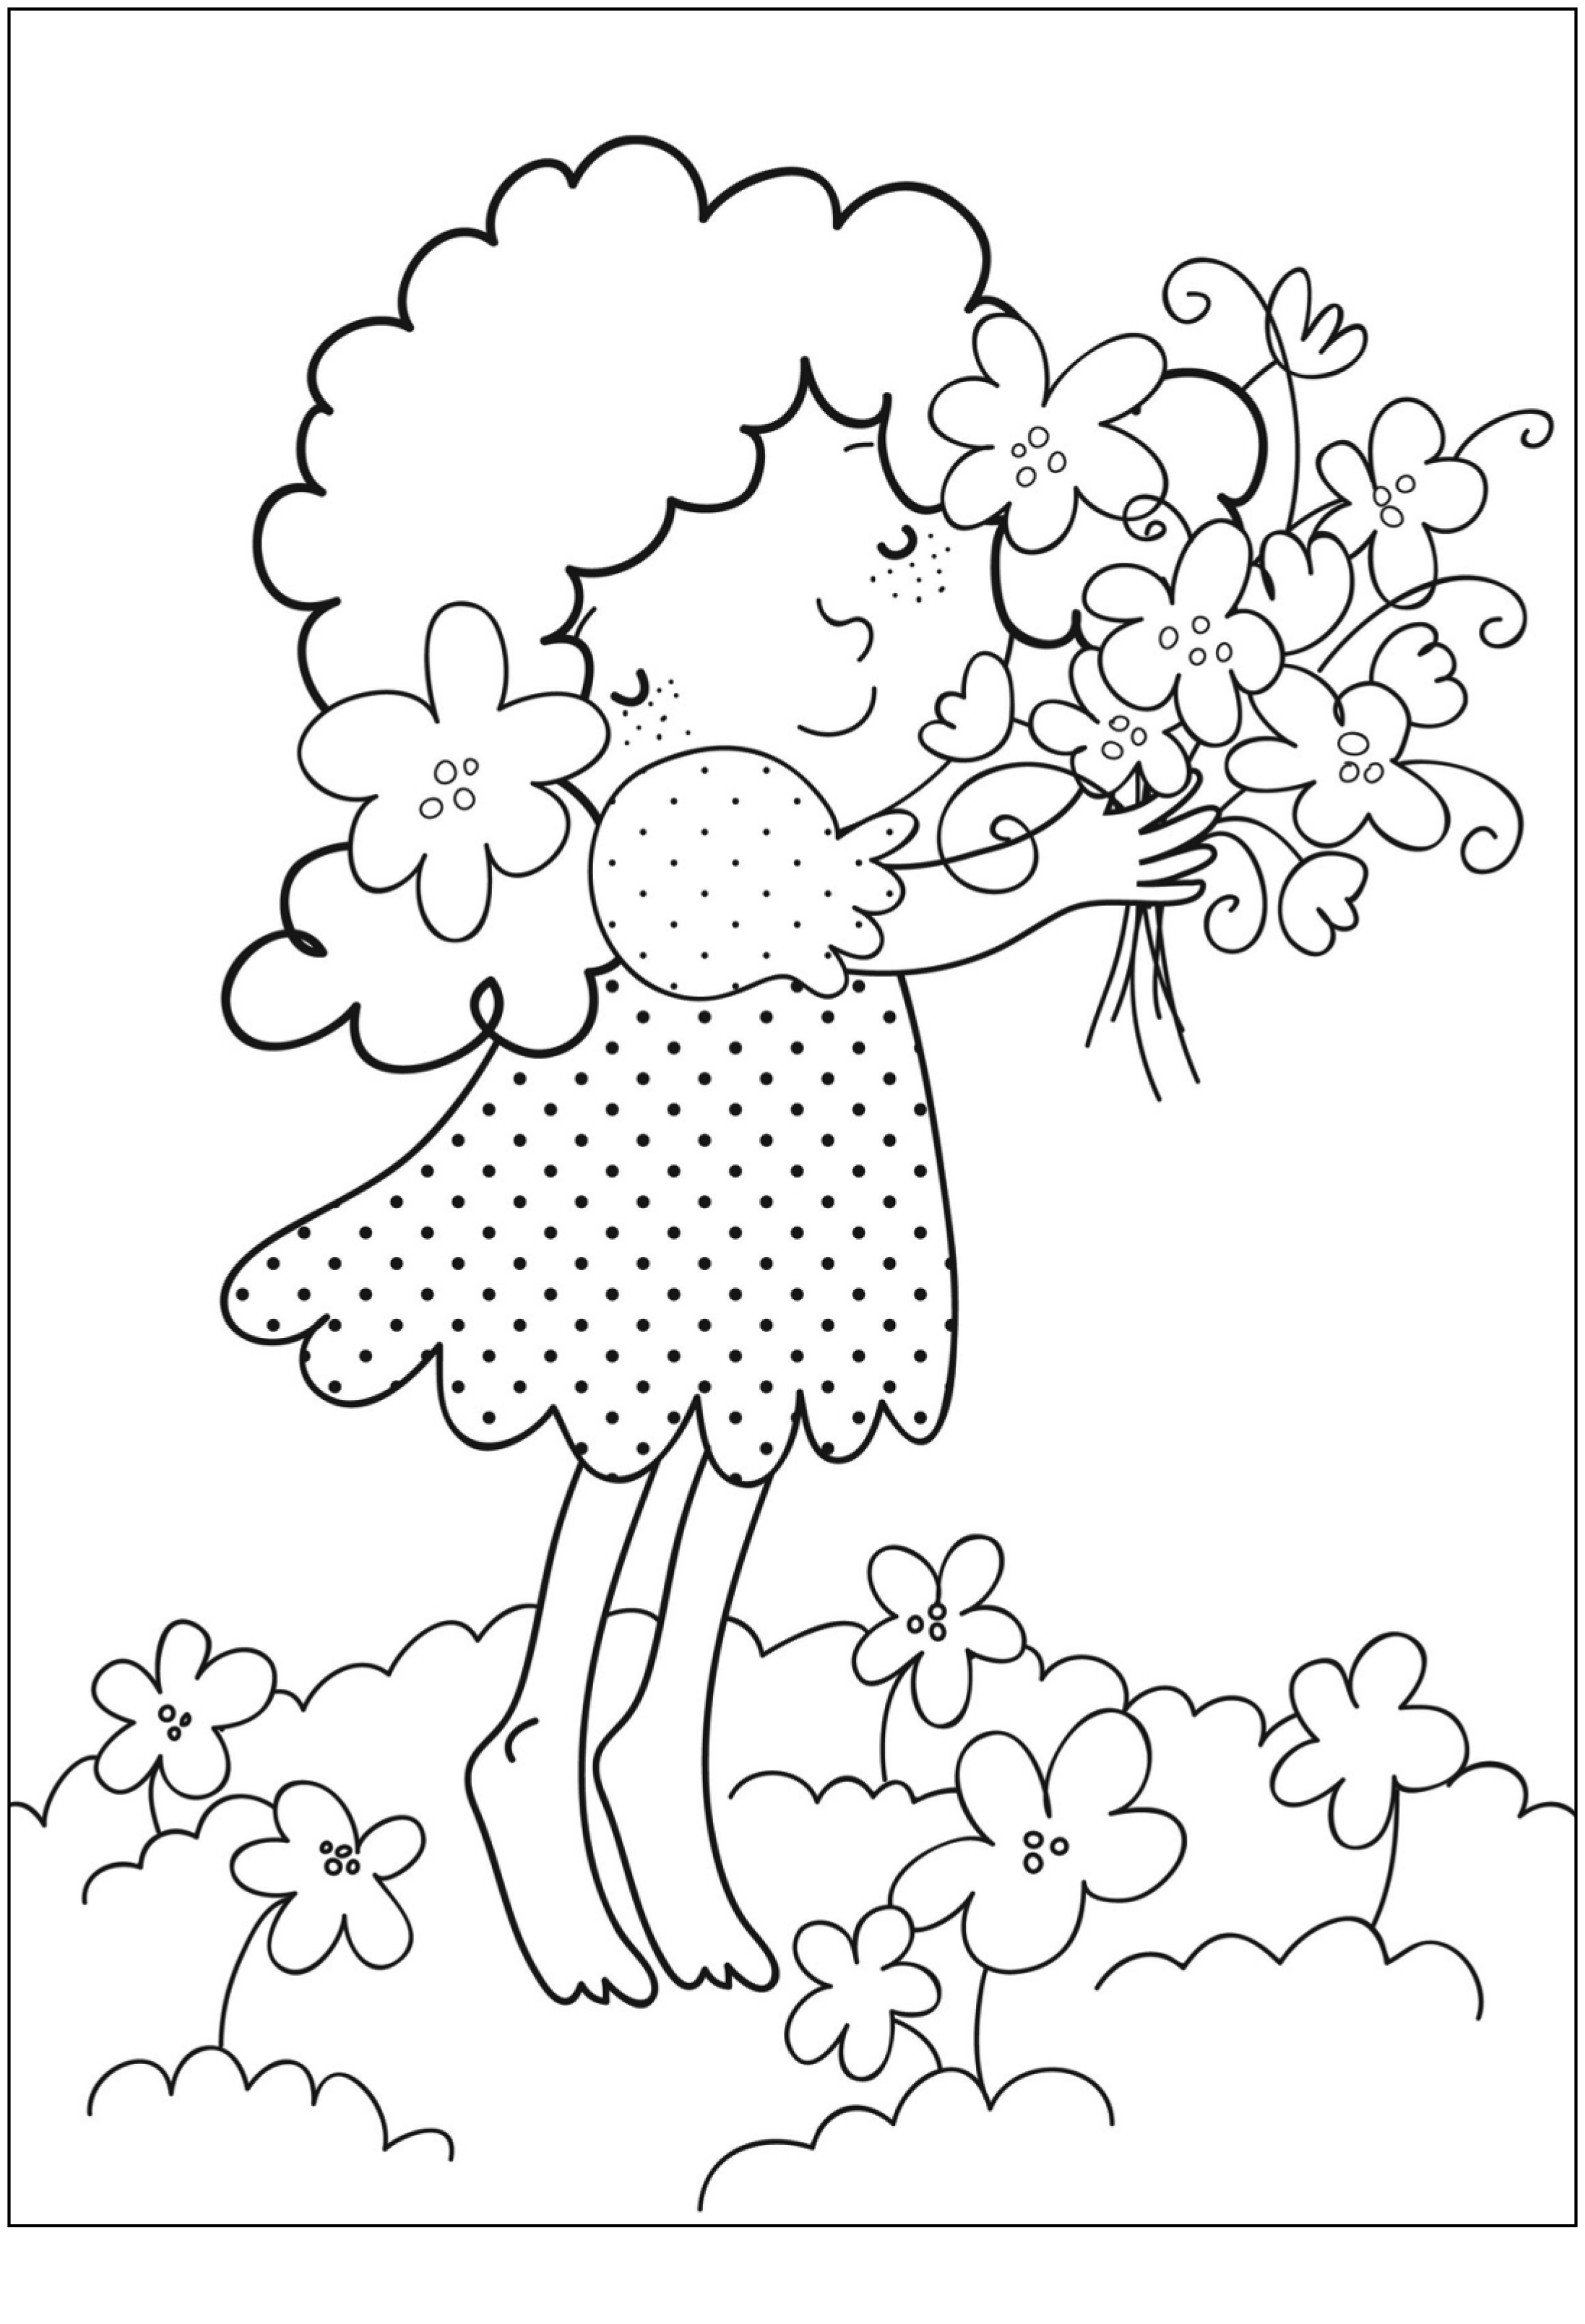 colouring pictures of plants free printable flower coloring pages for kids best colouring of pictures plants 1 2